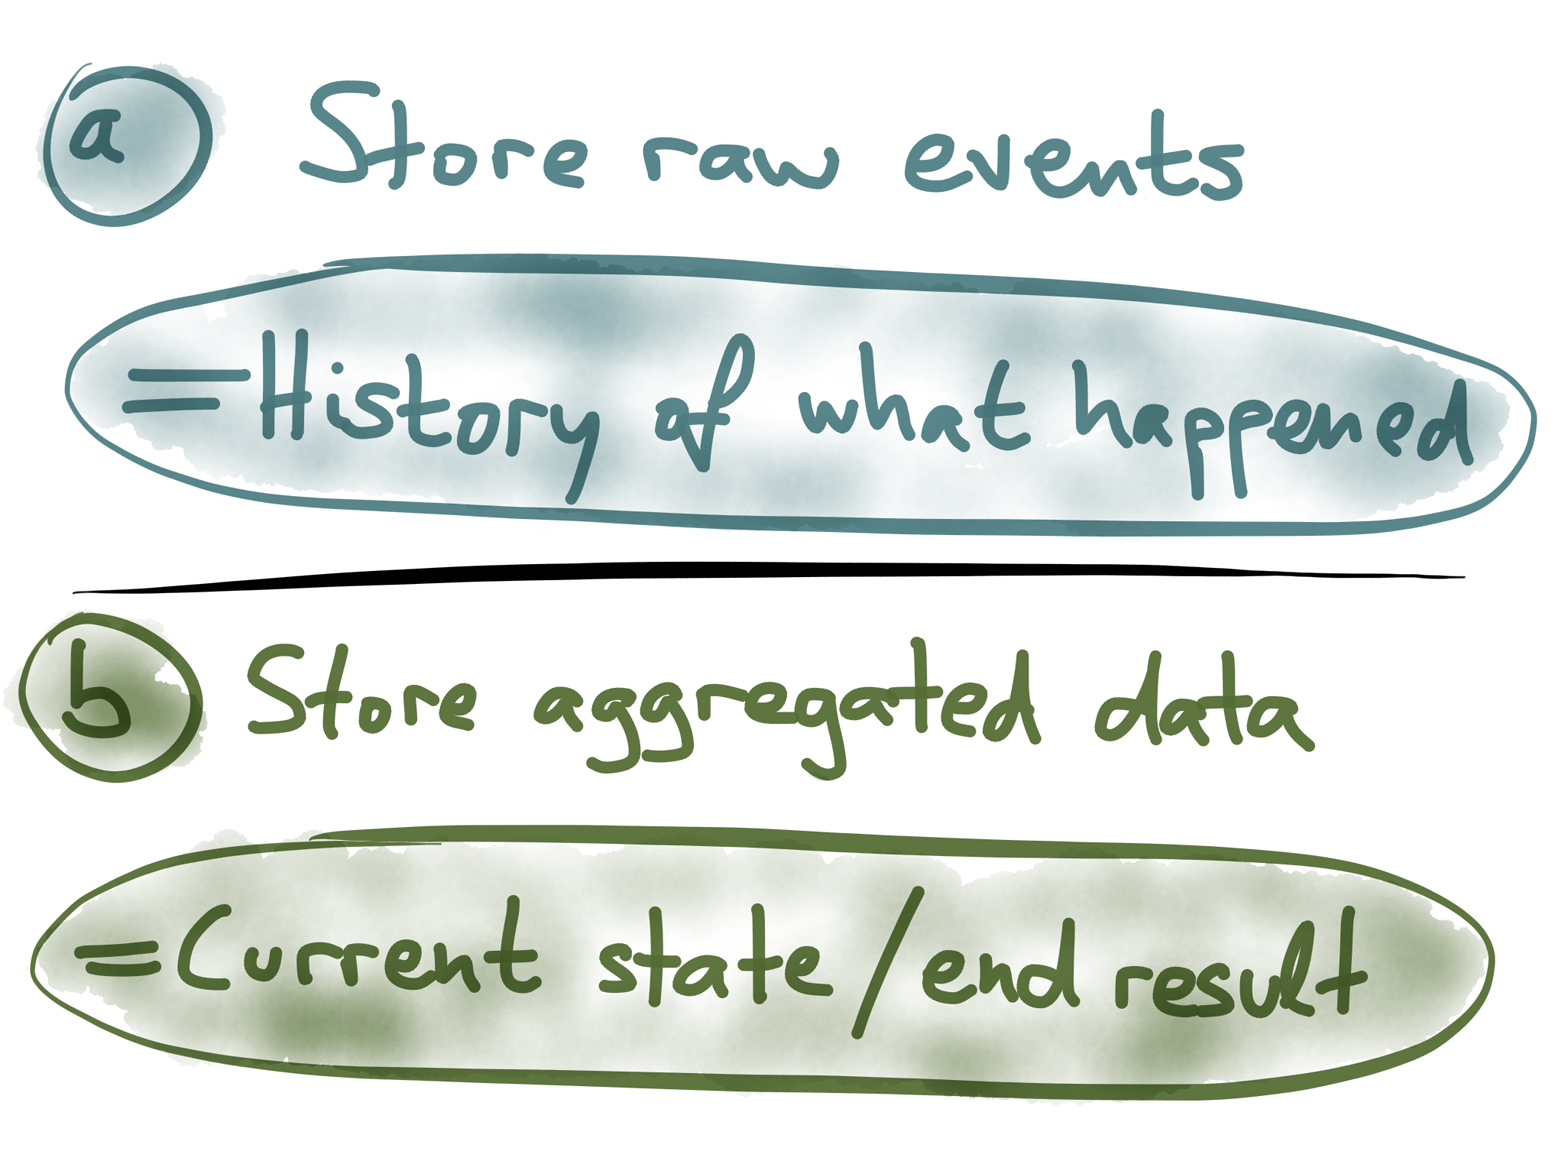 Storing raw events versus aggregated data.